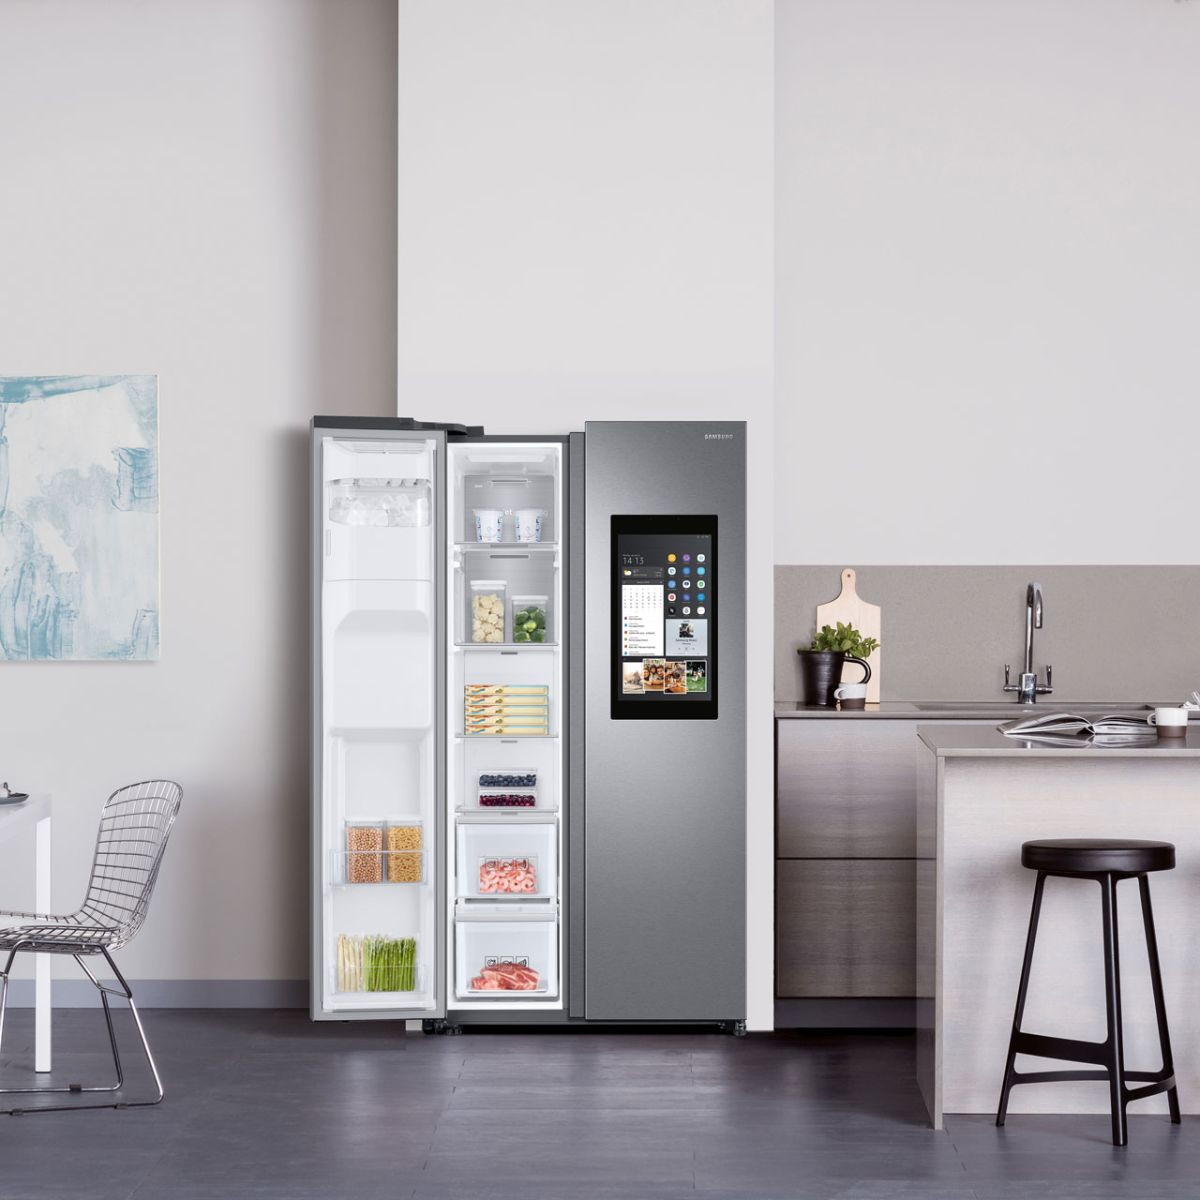 Looking for a Samsung fridge? Get one with £100 off at Currys